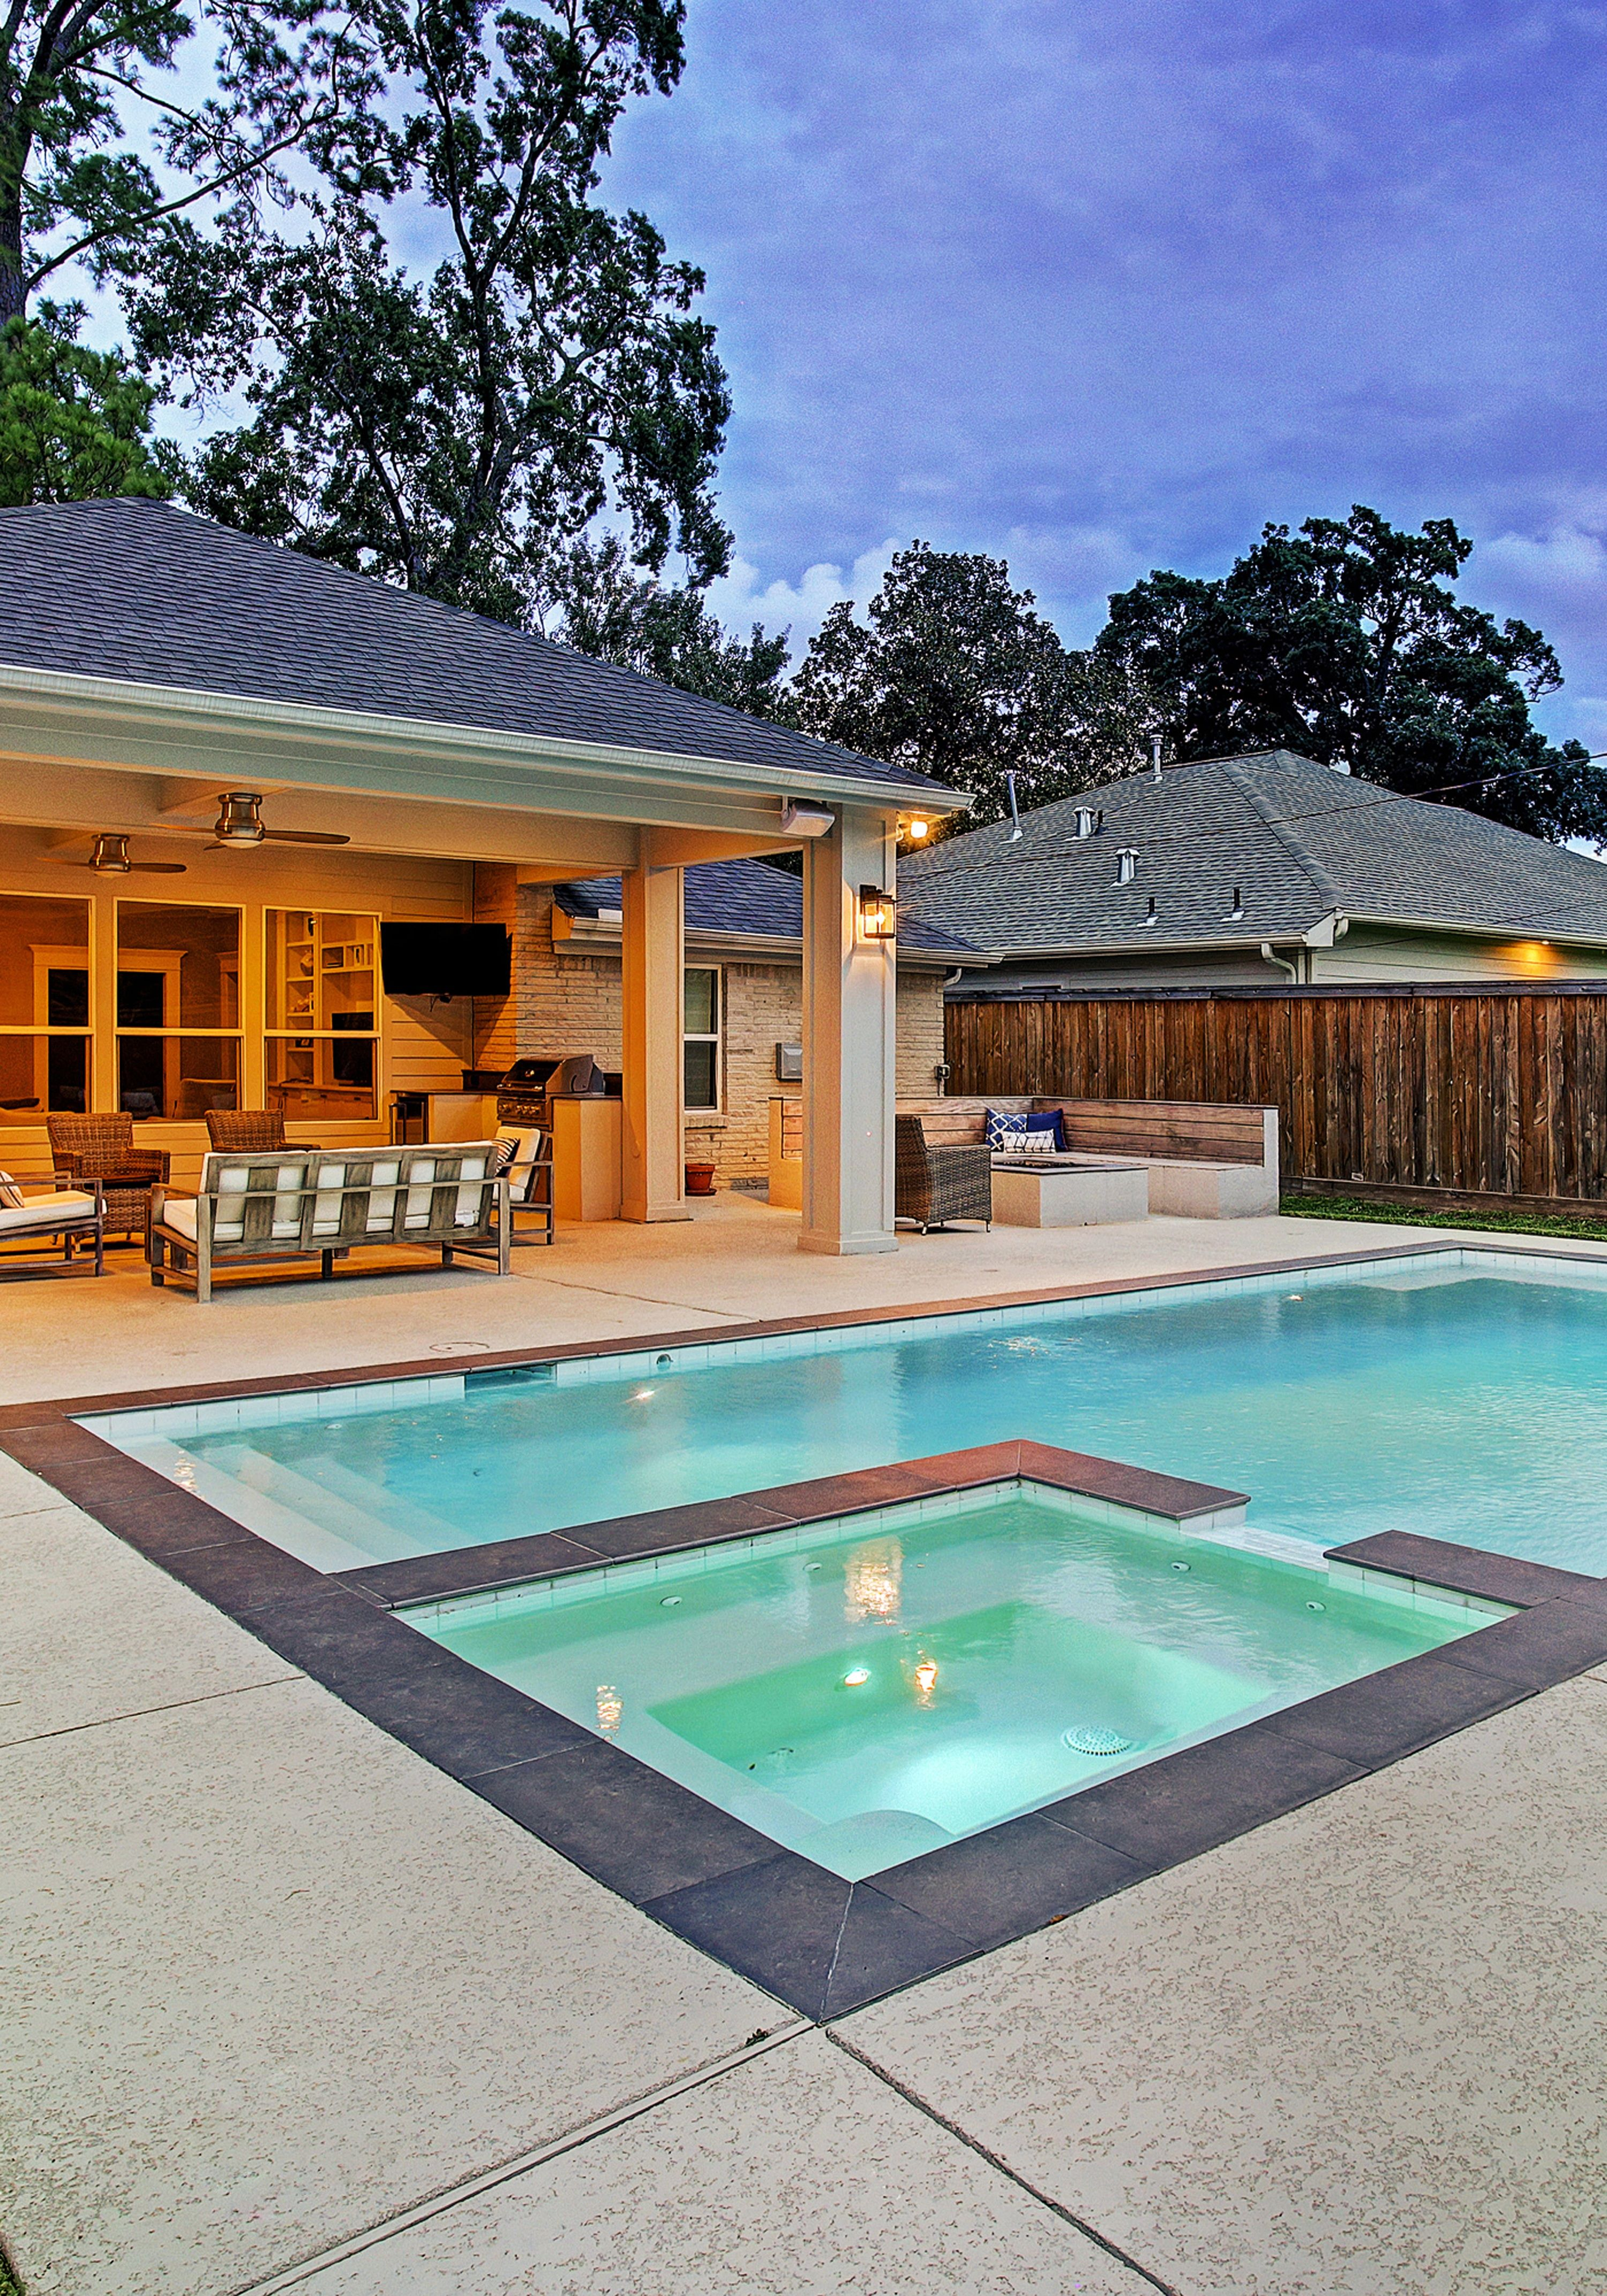 Pool Patio Kitchen And Outdoor Living Addition Outdoor Kitchen Built In Seating Outdoor Kitchen Appliances